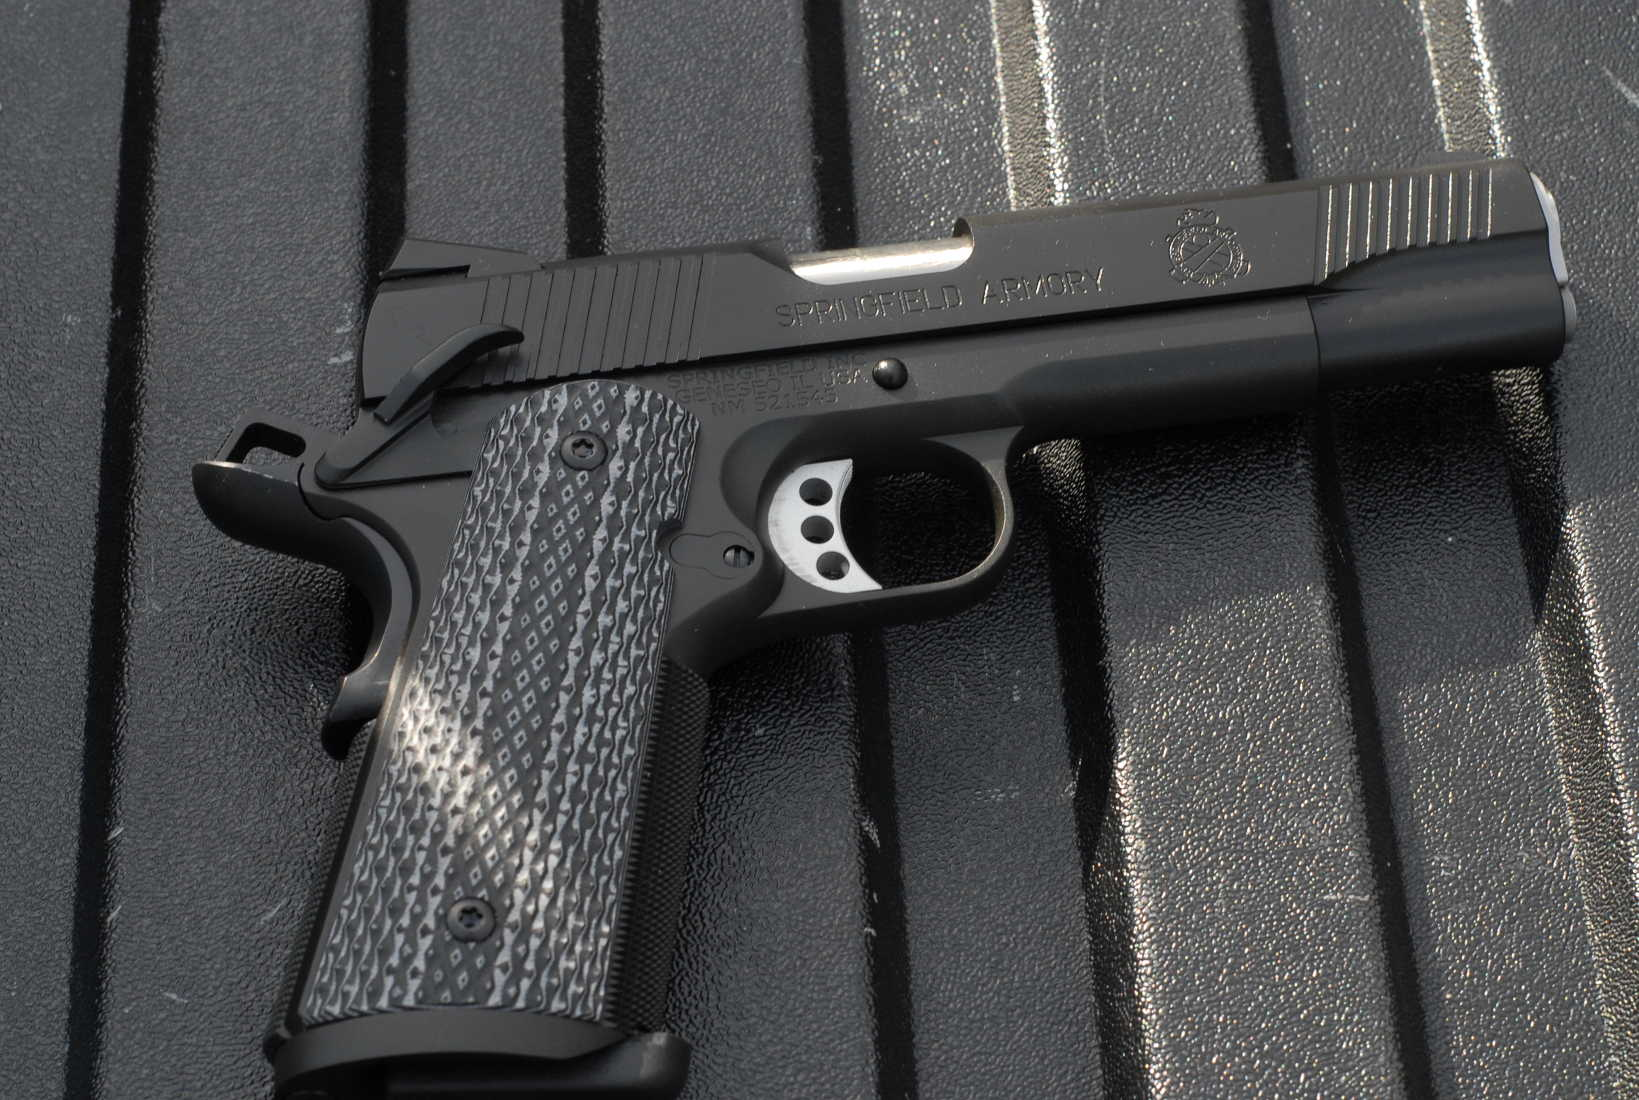 Product Review: Springfield Armory TRP Review